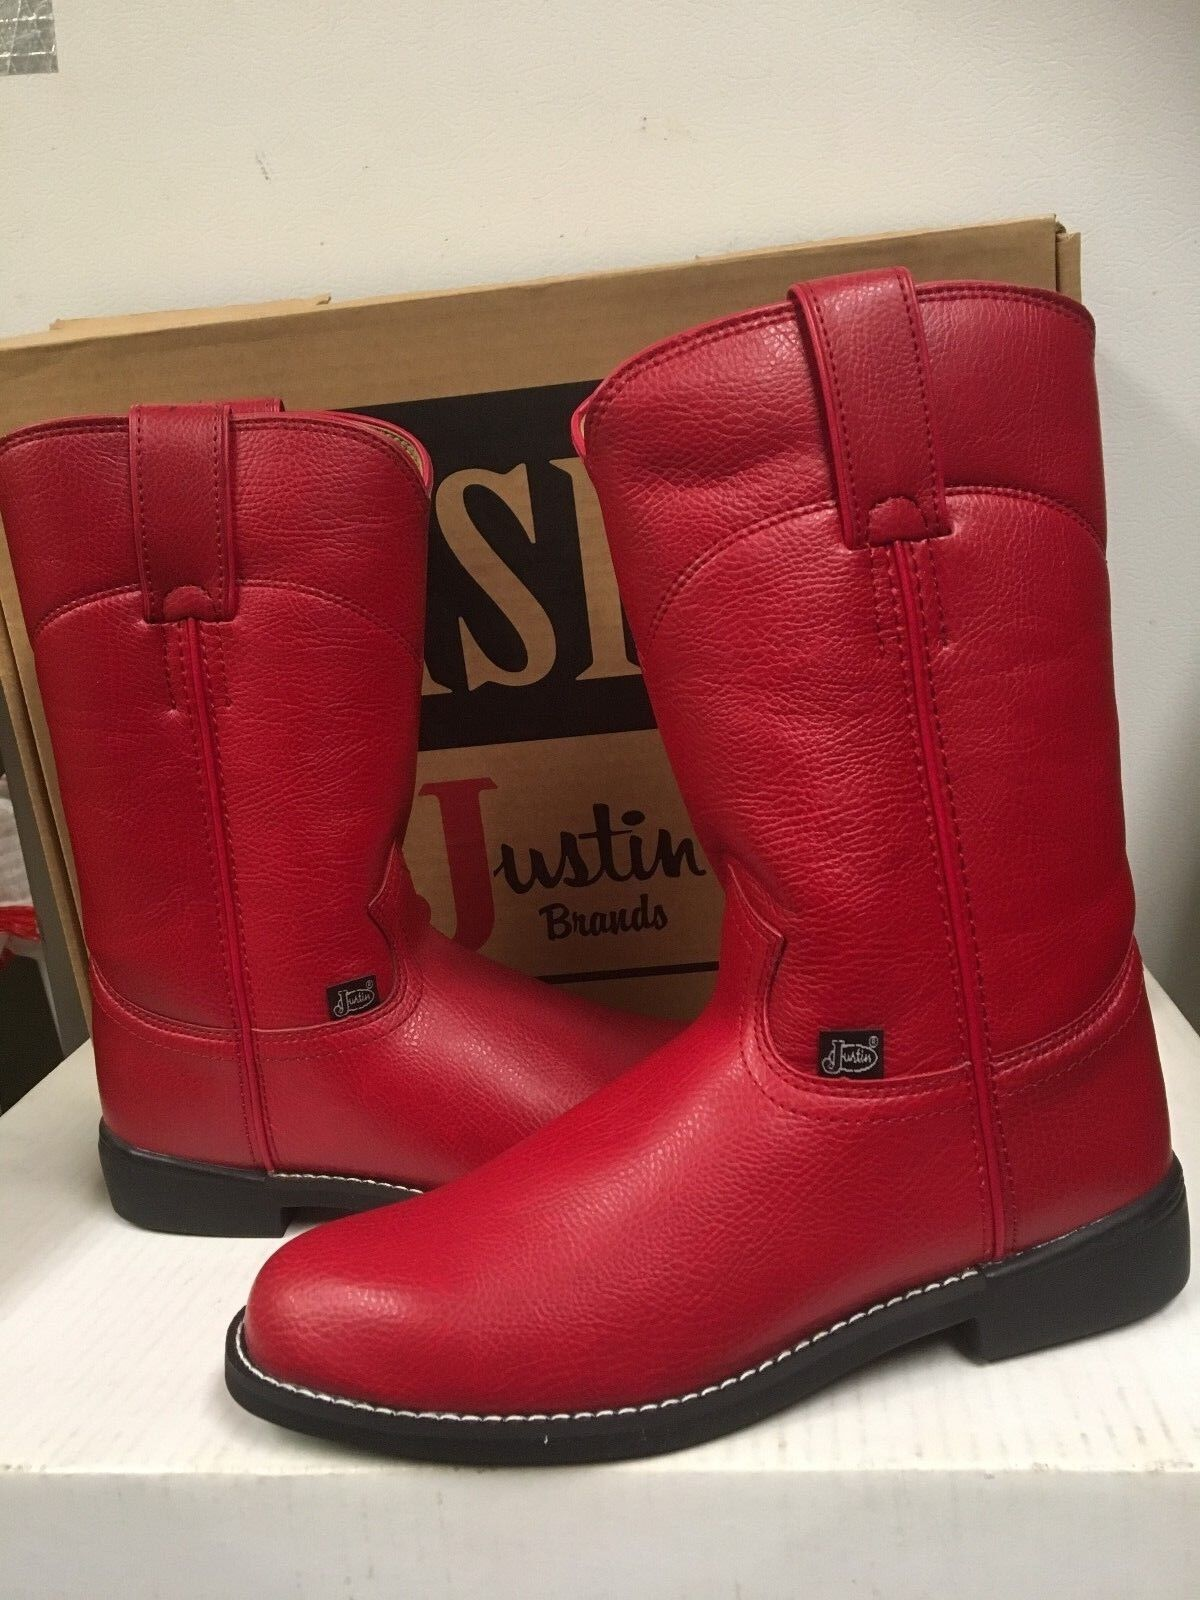 Justin Basics Women's Western Roper Leather Boots L3007 Red Size 5.5 B NEW